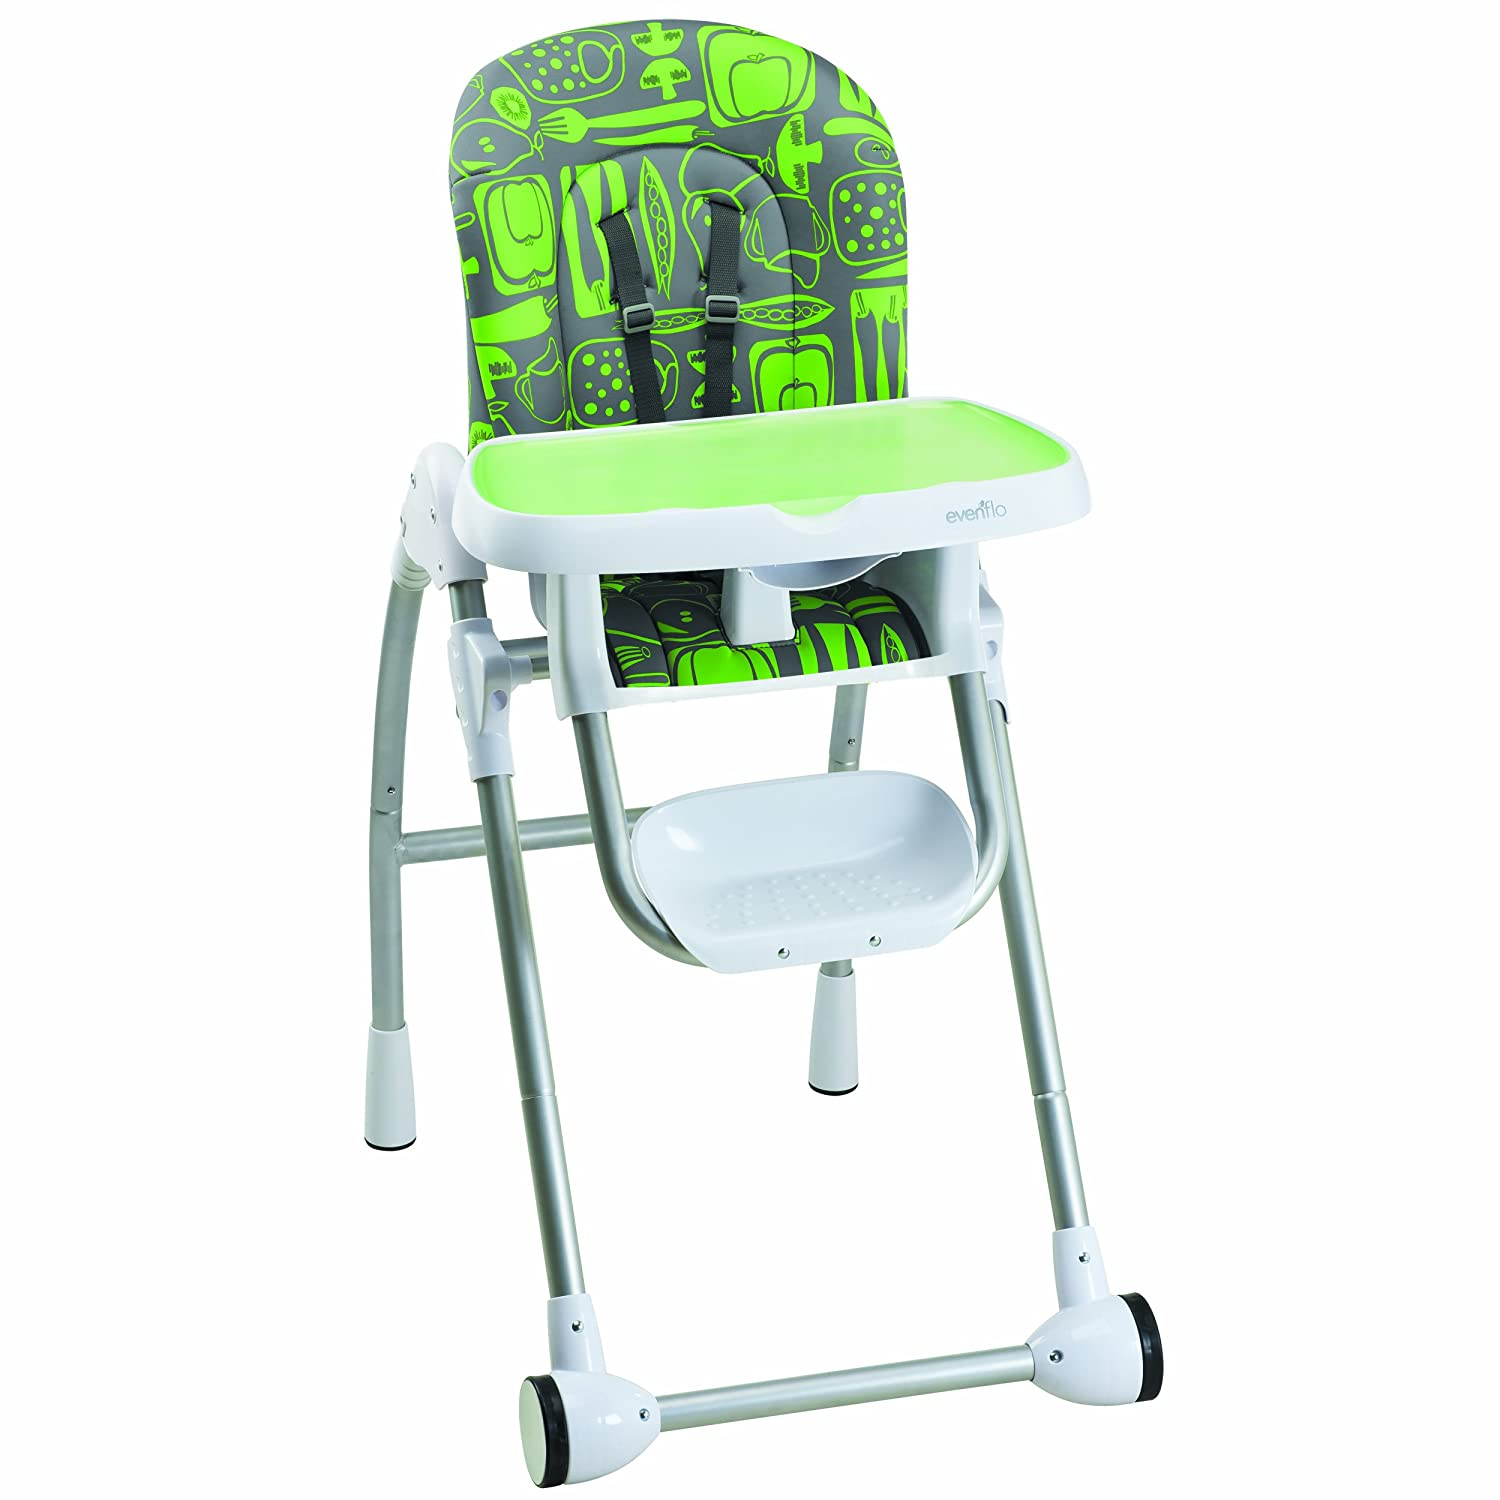 evenflo modern 200 high chair snap on glides top rated chairs for babies 2015